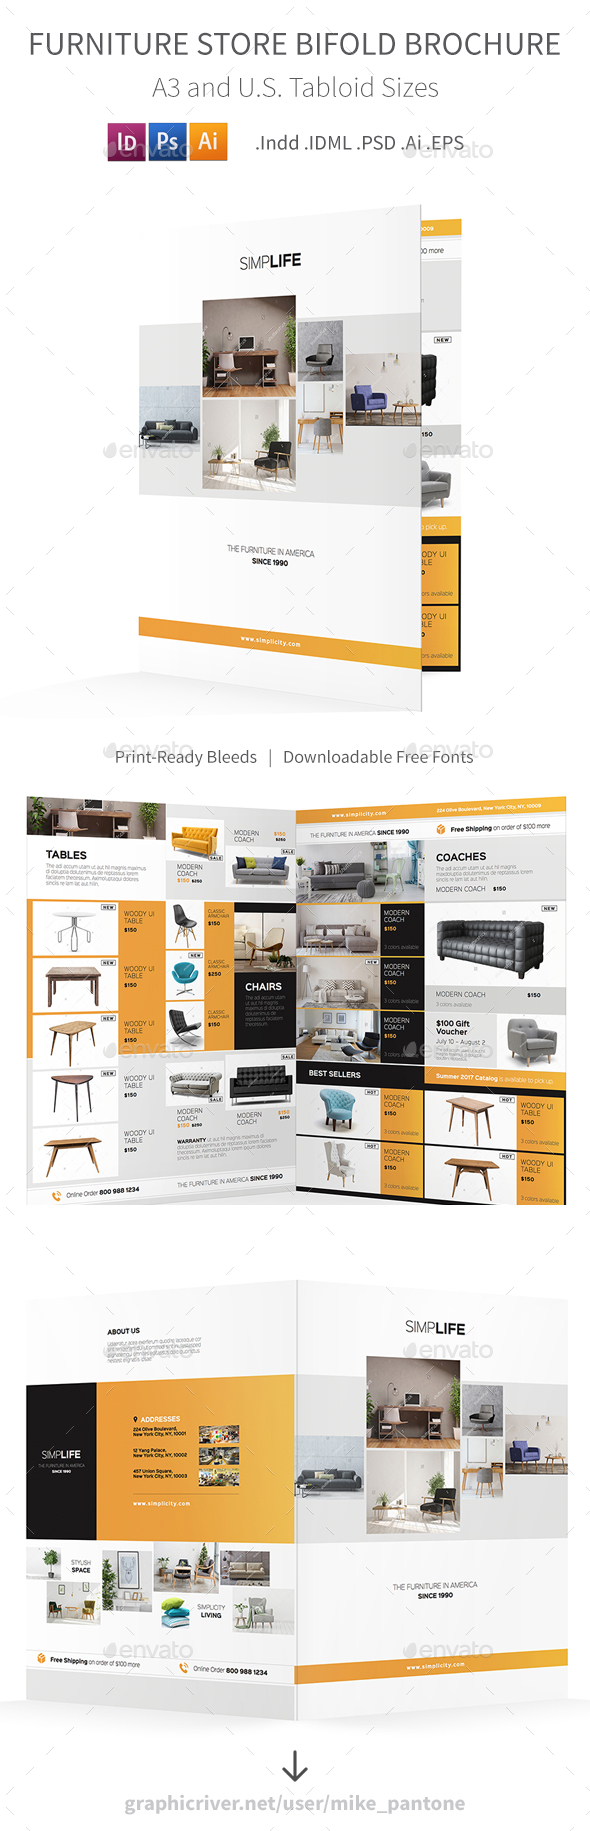 GraphicRiver Furniture Store Bifold Halffold Brochure 3 20251785